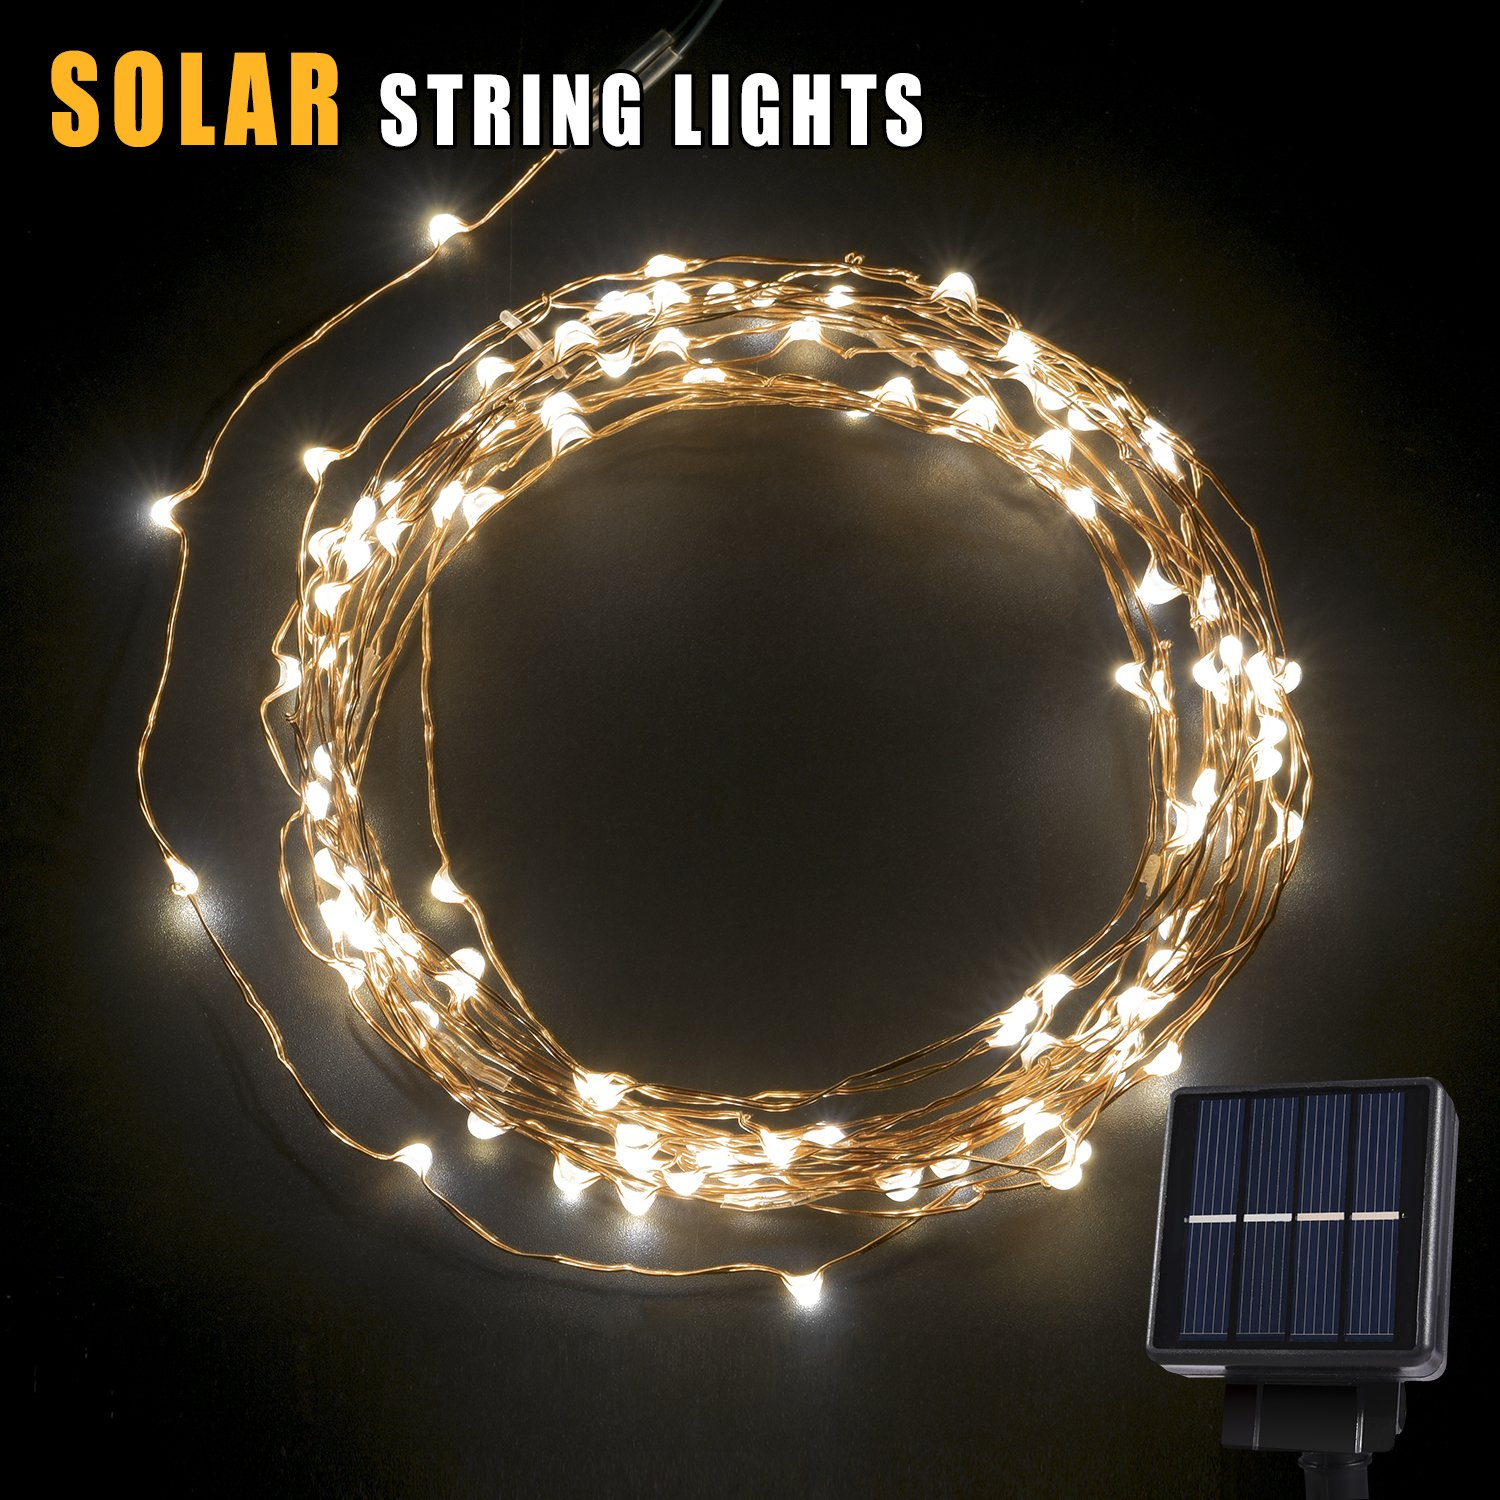 Solar String Lights For Garden : Solar LED String Light 120 LEDs Outdoor Solar Powered LED String Lights Water... eBay